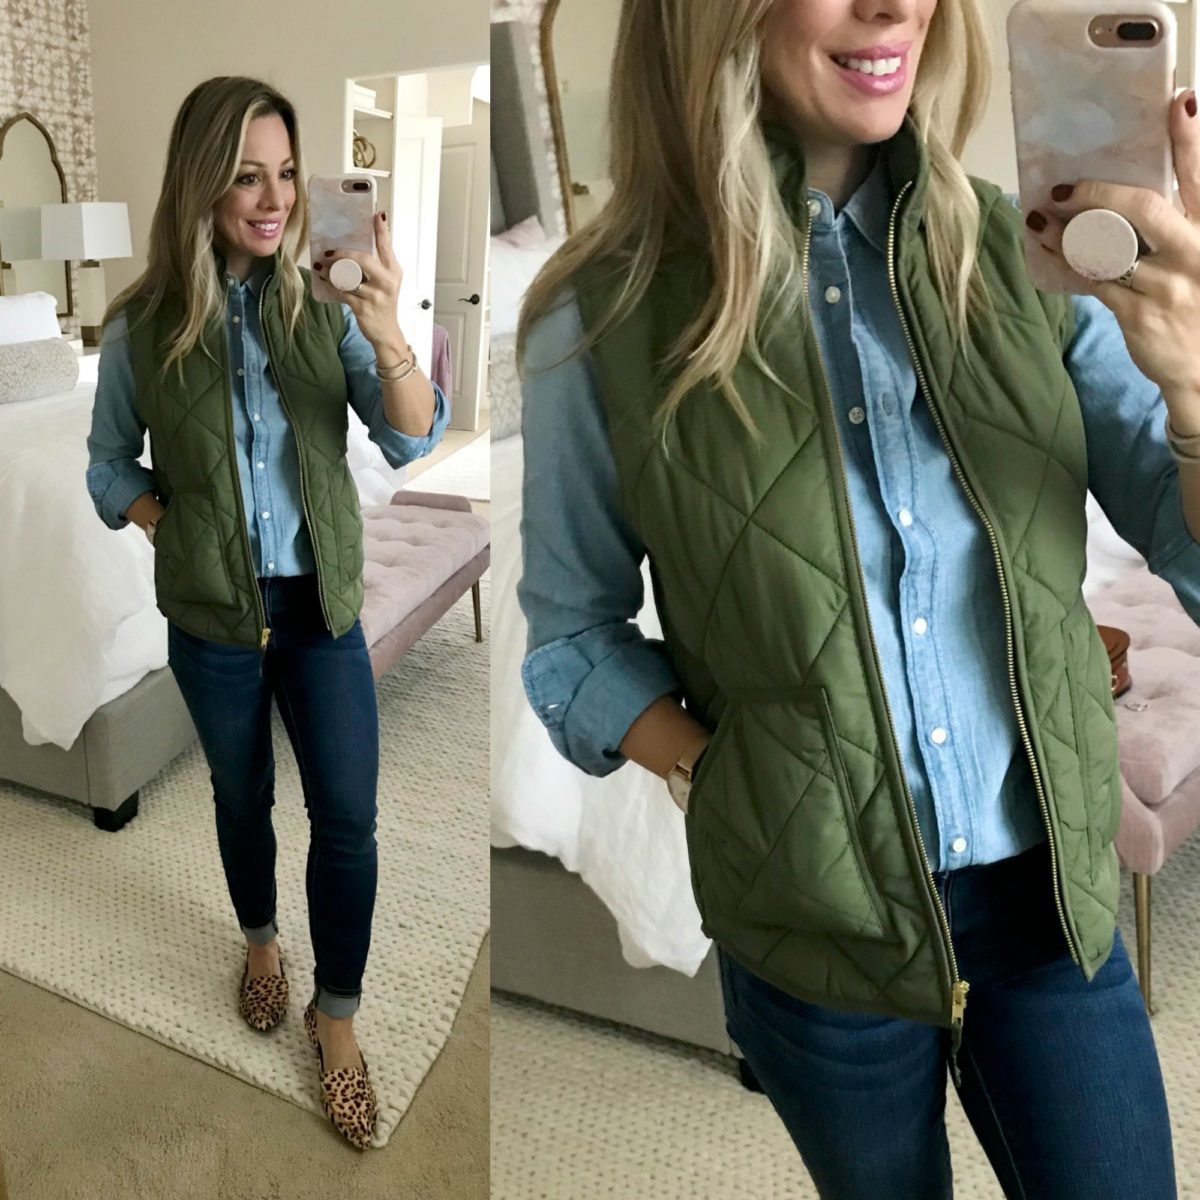 f4a177b92040b4 Amazon Fashion Haul J Crew puffer vest ...